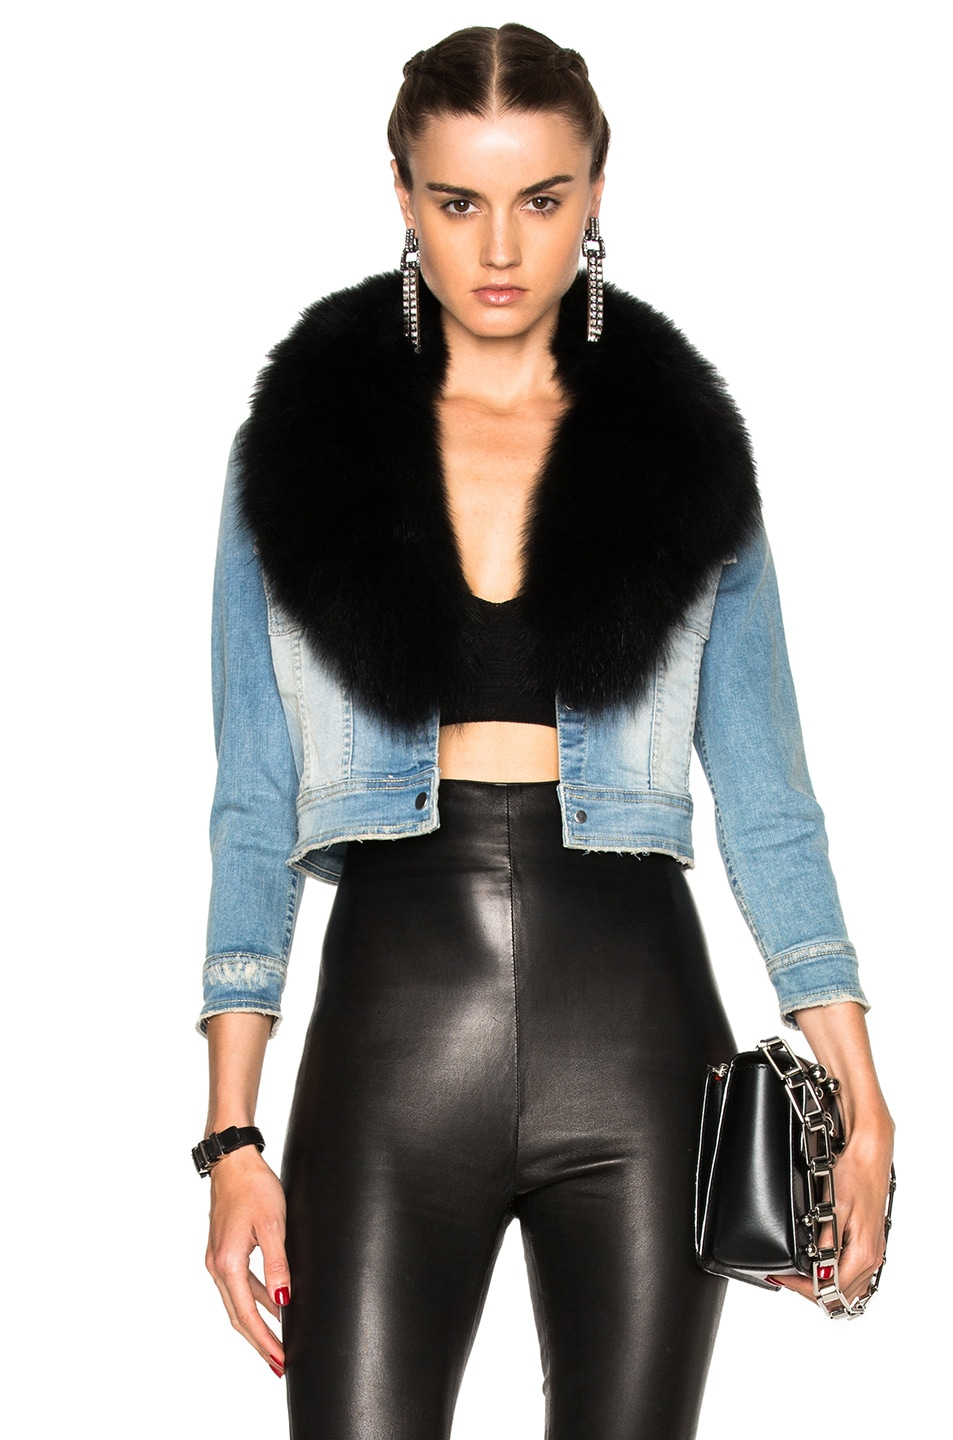 bd75f0953 Image 1 of ThePerfext Carla Jean Jacket with Fox Fur Collar in Light Denim &  Black